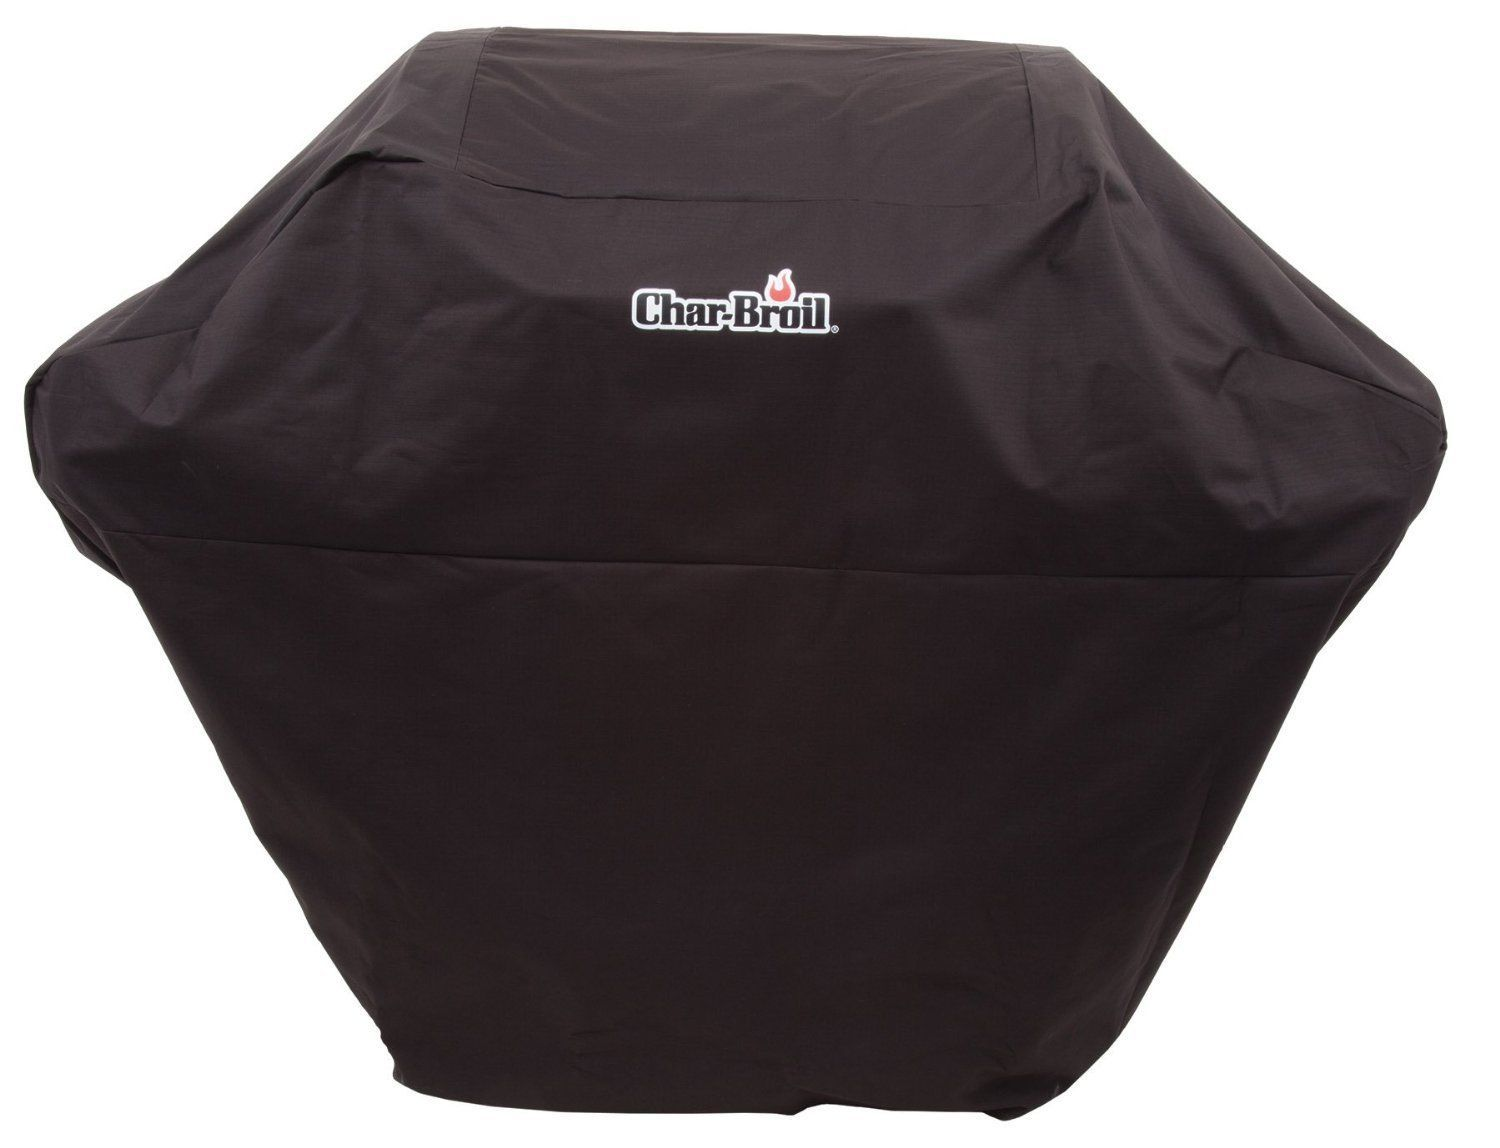 Char Broil 3 4 Burner Rip Stop Cover Char Broil Grill Cover Broil